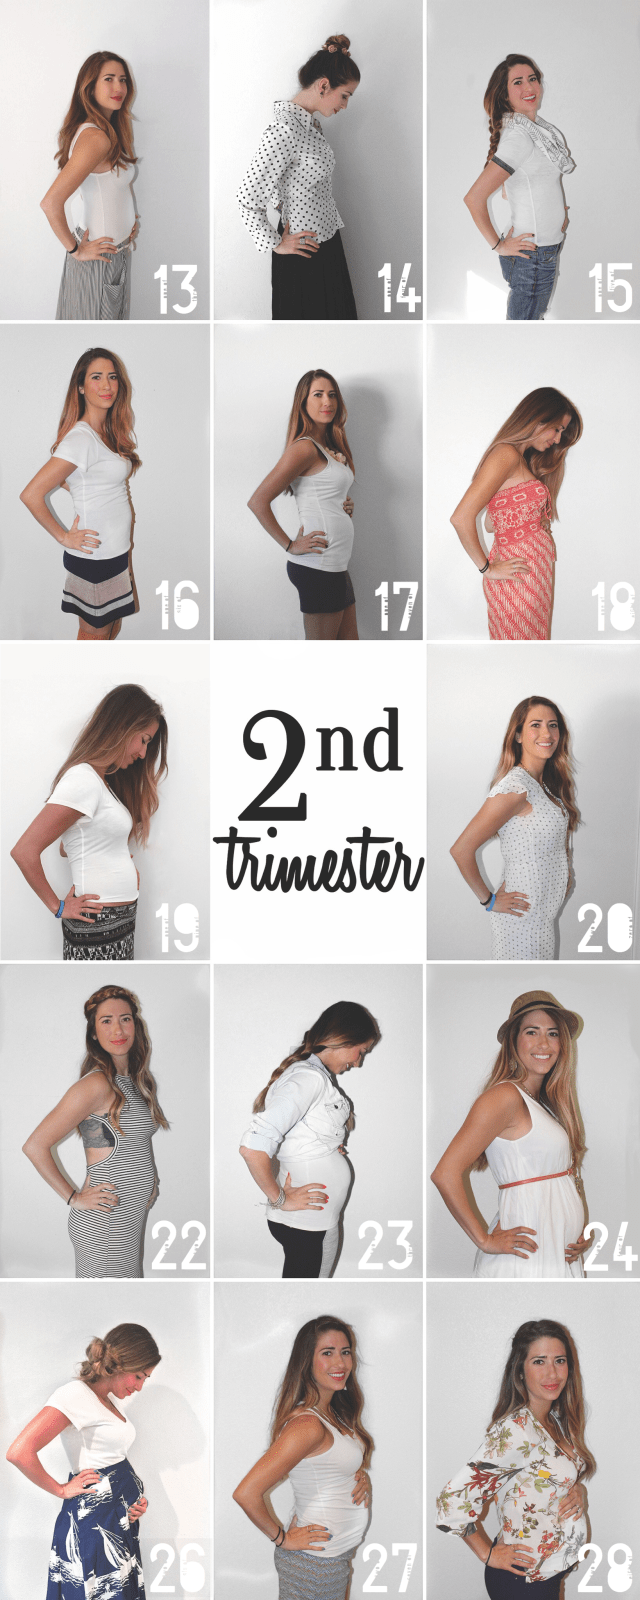 second trimester weeks